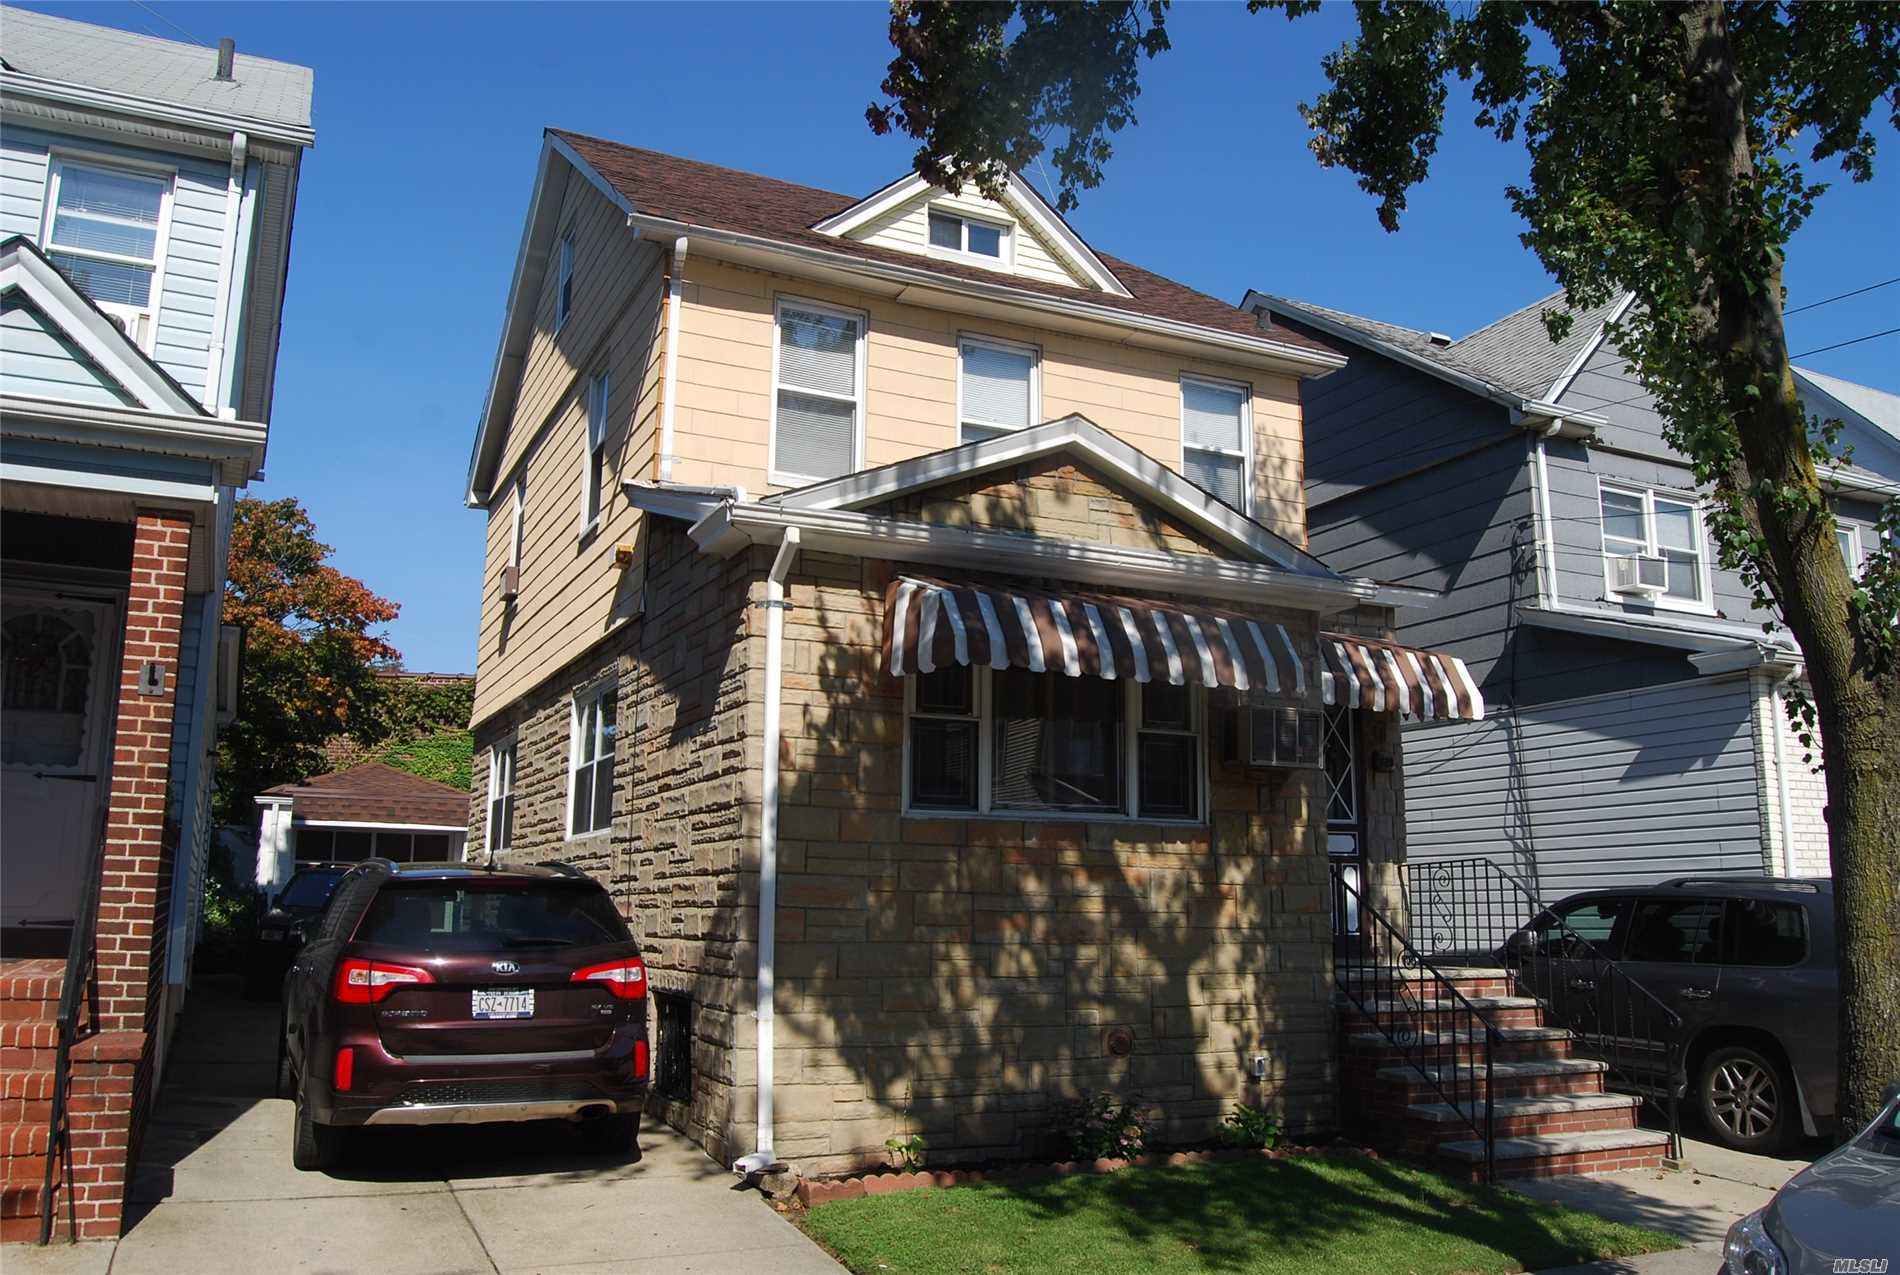 Beautiful Detached 2 Family, 1 Bedroom Over 1 Bedroom With Finished Basement, Driveway Can Fit 2 Cars Plus Garage And Private Yard , Near Shopping And Transportation. Will Be Delivered Fully Vacant